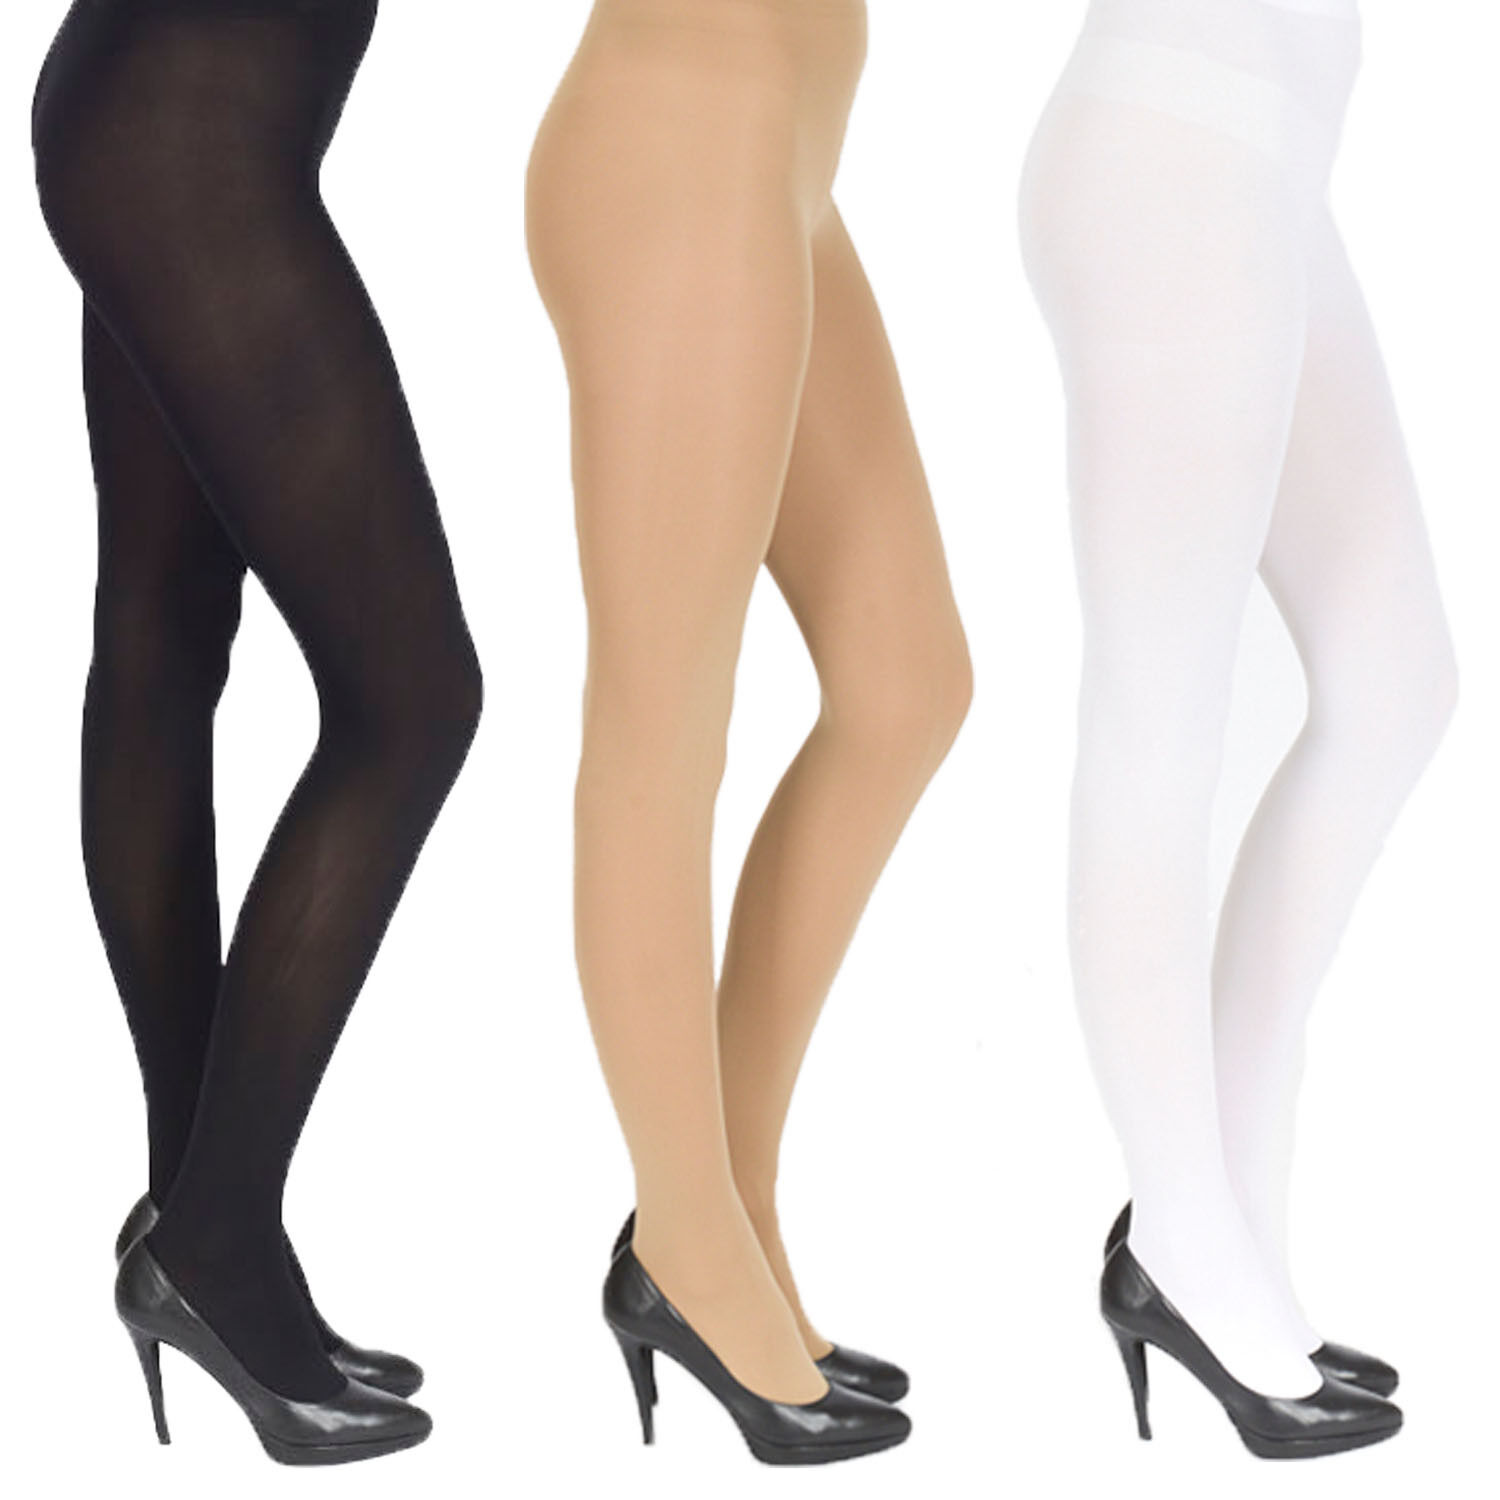 44423ae4b07 Details about 5 x Pair Pack Opaque Tights, Extra Thick 40, 60, 100 Denier,  Womens Ladies Girls